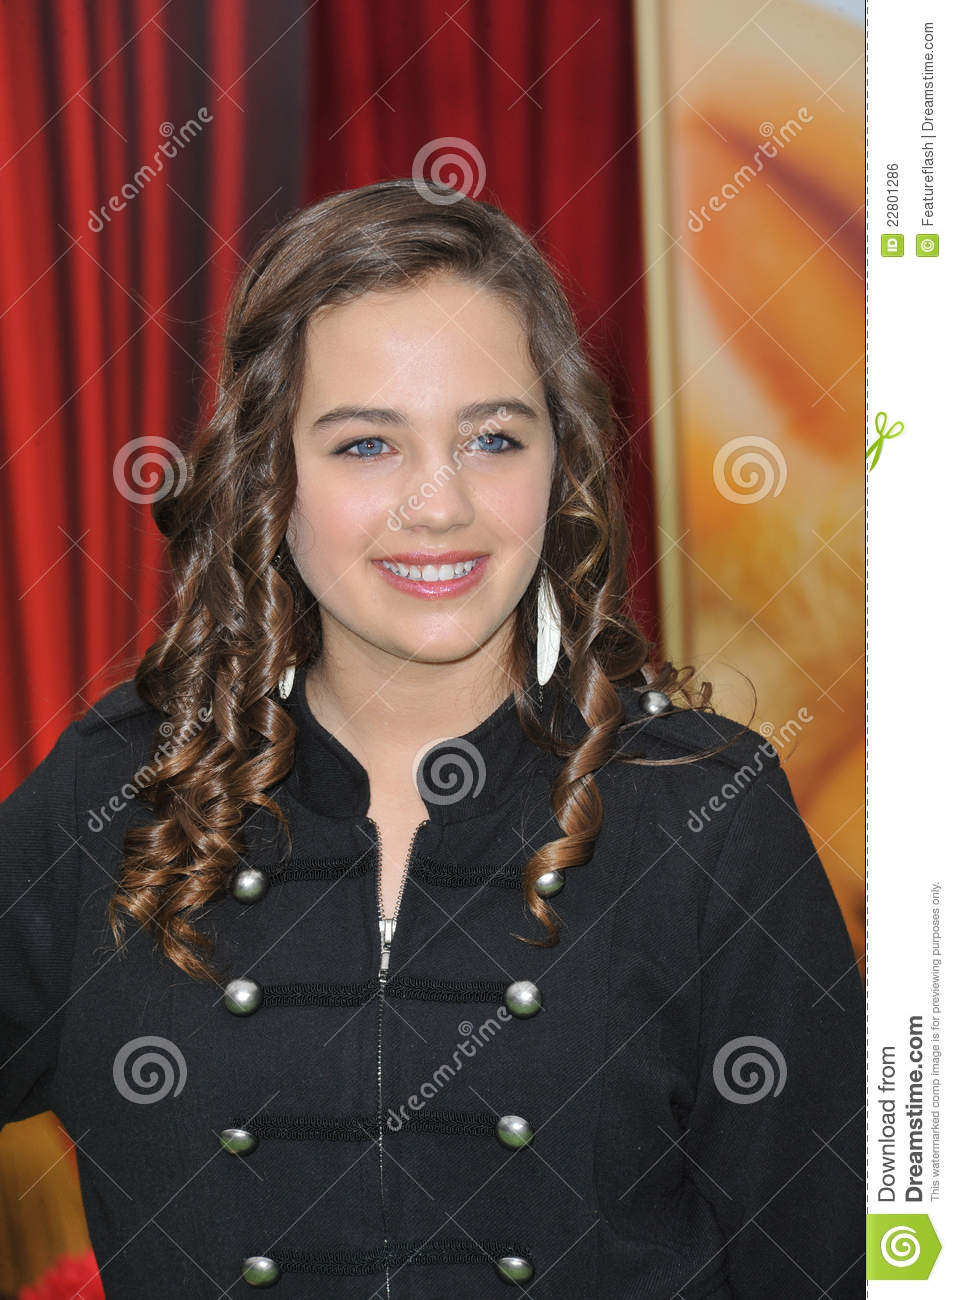 mary mouser diabetesmary mouser criminal minds, mary mouser instagram, mary mouser twitter, mary mouser scandal, mary mouser interview, mary mouser dating, mary mouser 2015, mary mouser diabetes, mary mouser hot, mary mouser facebook, mary mouser twin, mary mouser wikipedia, mary mouser and nick robinson, mary mouser height, mary mouser frenemies, mary mouser boyfriend